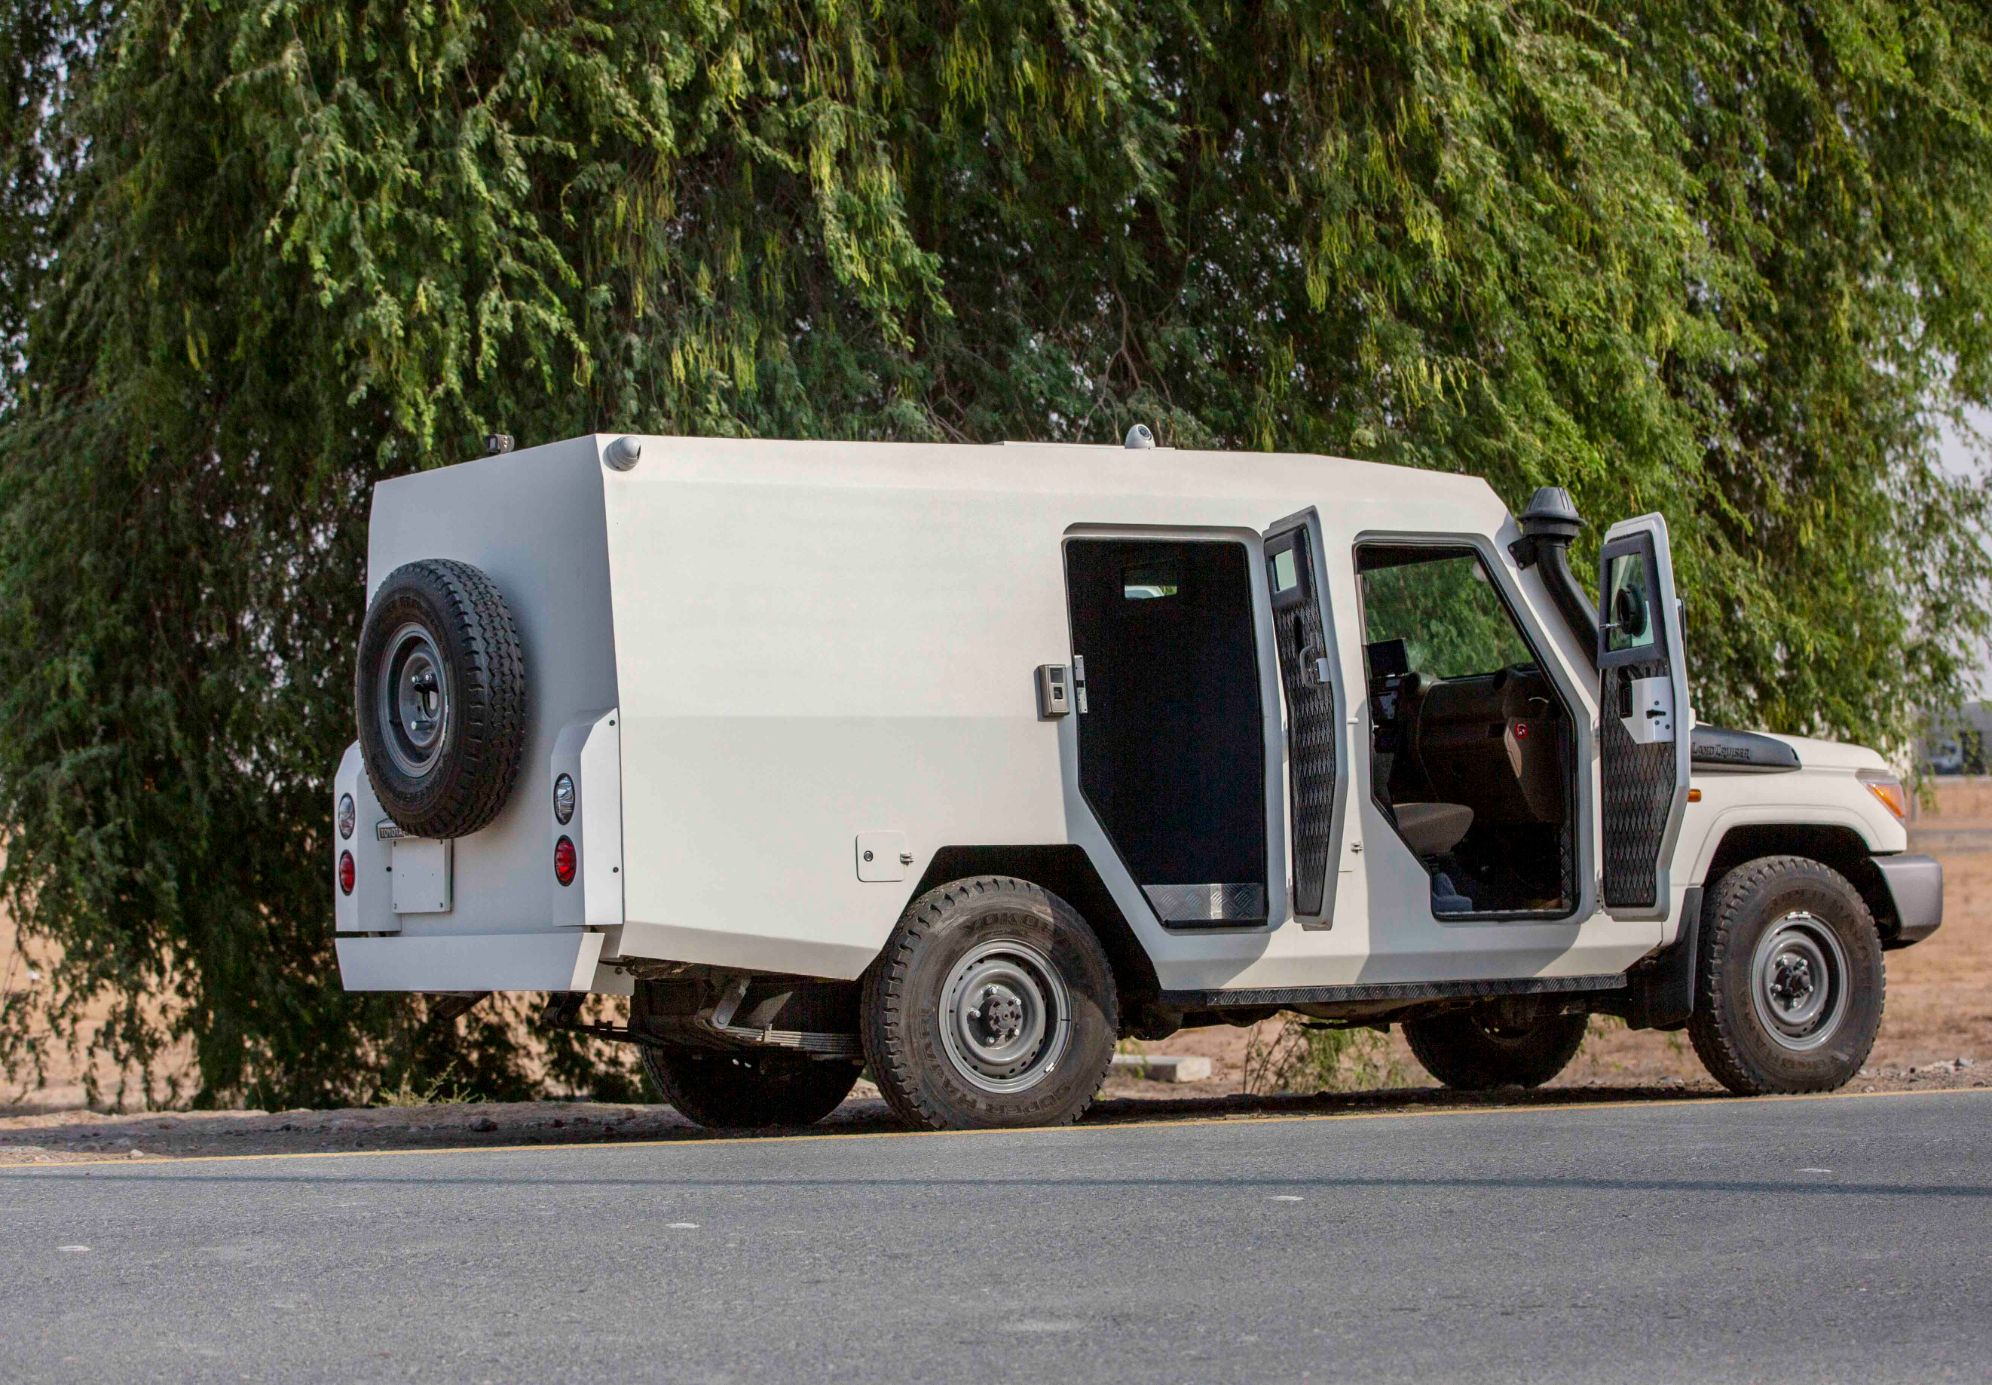 The Mahindra Armoured Toyota Land Cruiser 78 Cash in Transit